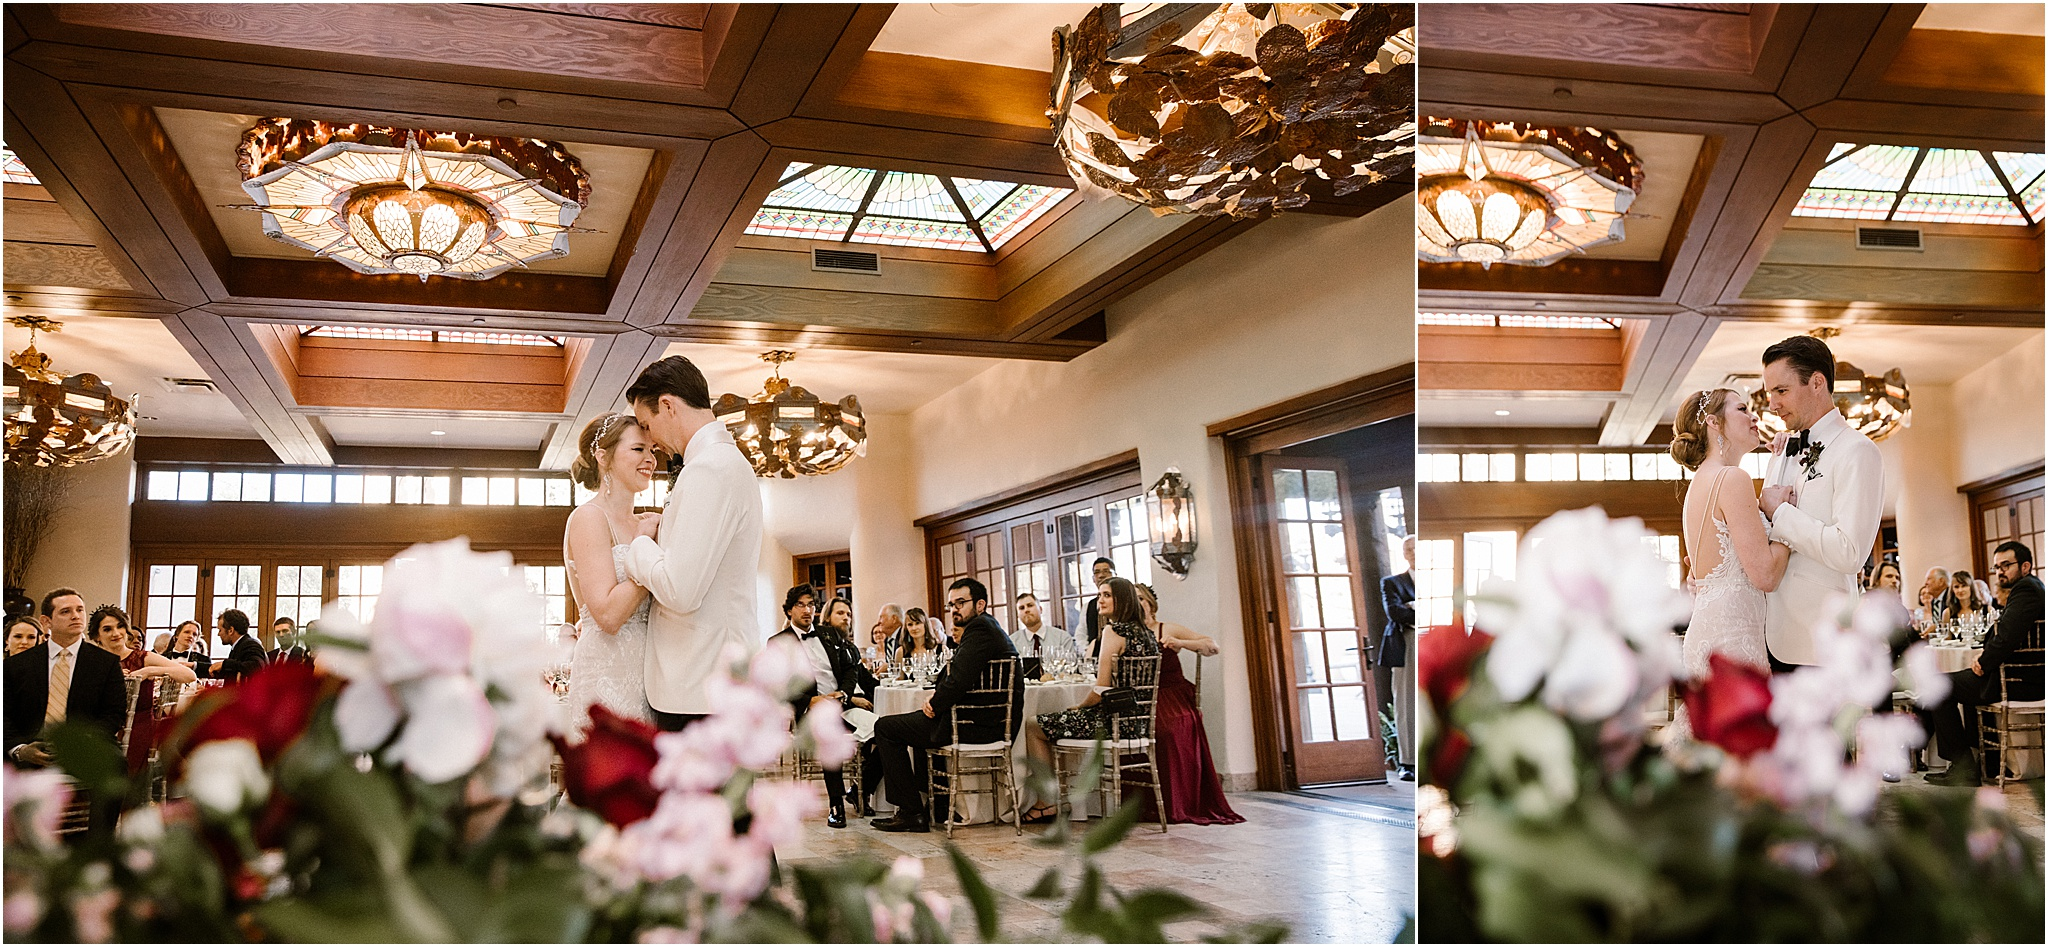 BLUE ROSE PHOTOGRAPHY SANTA FE WEDDING_47